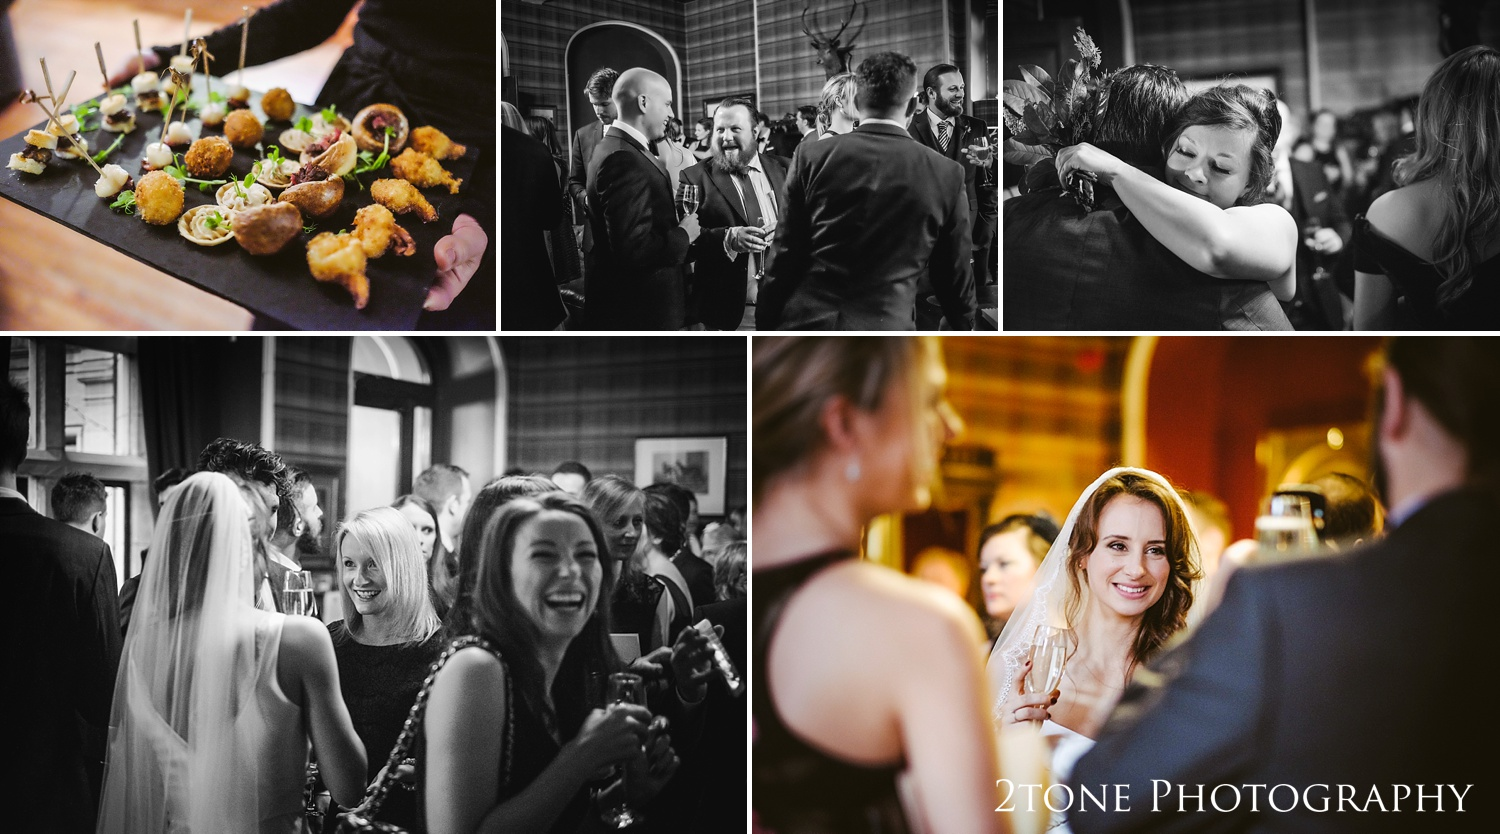 Wedding guests at at Ellingham Hall. Winter wedding photography by www.2tonephotography.co.uk